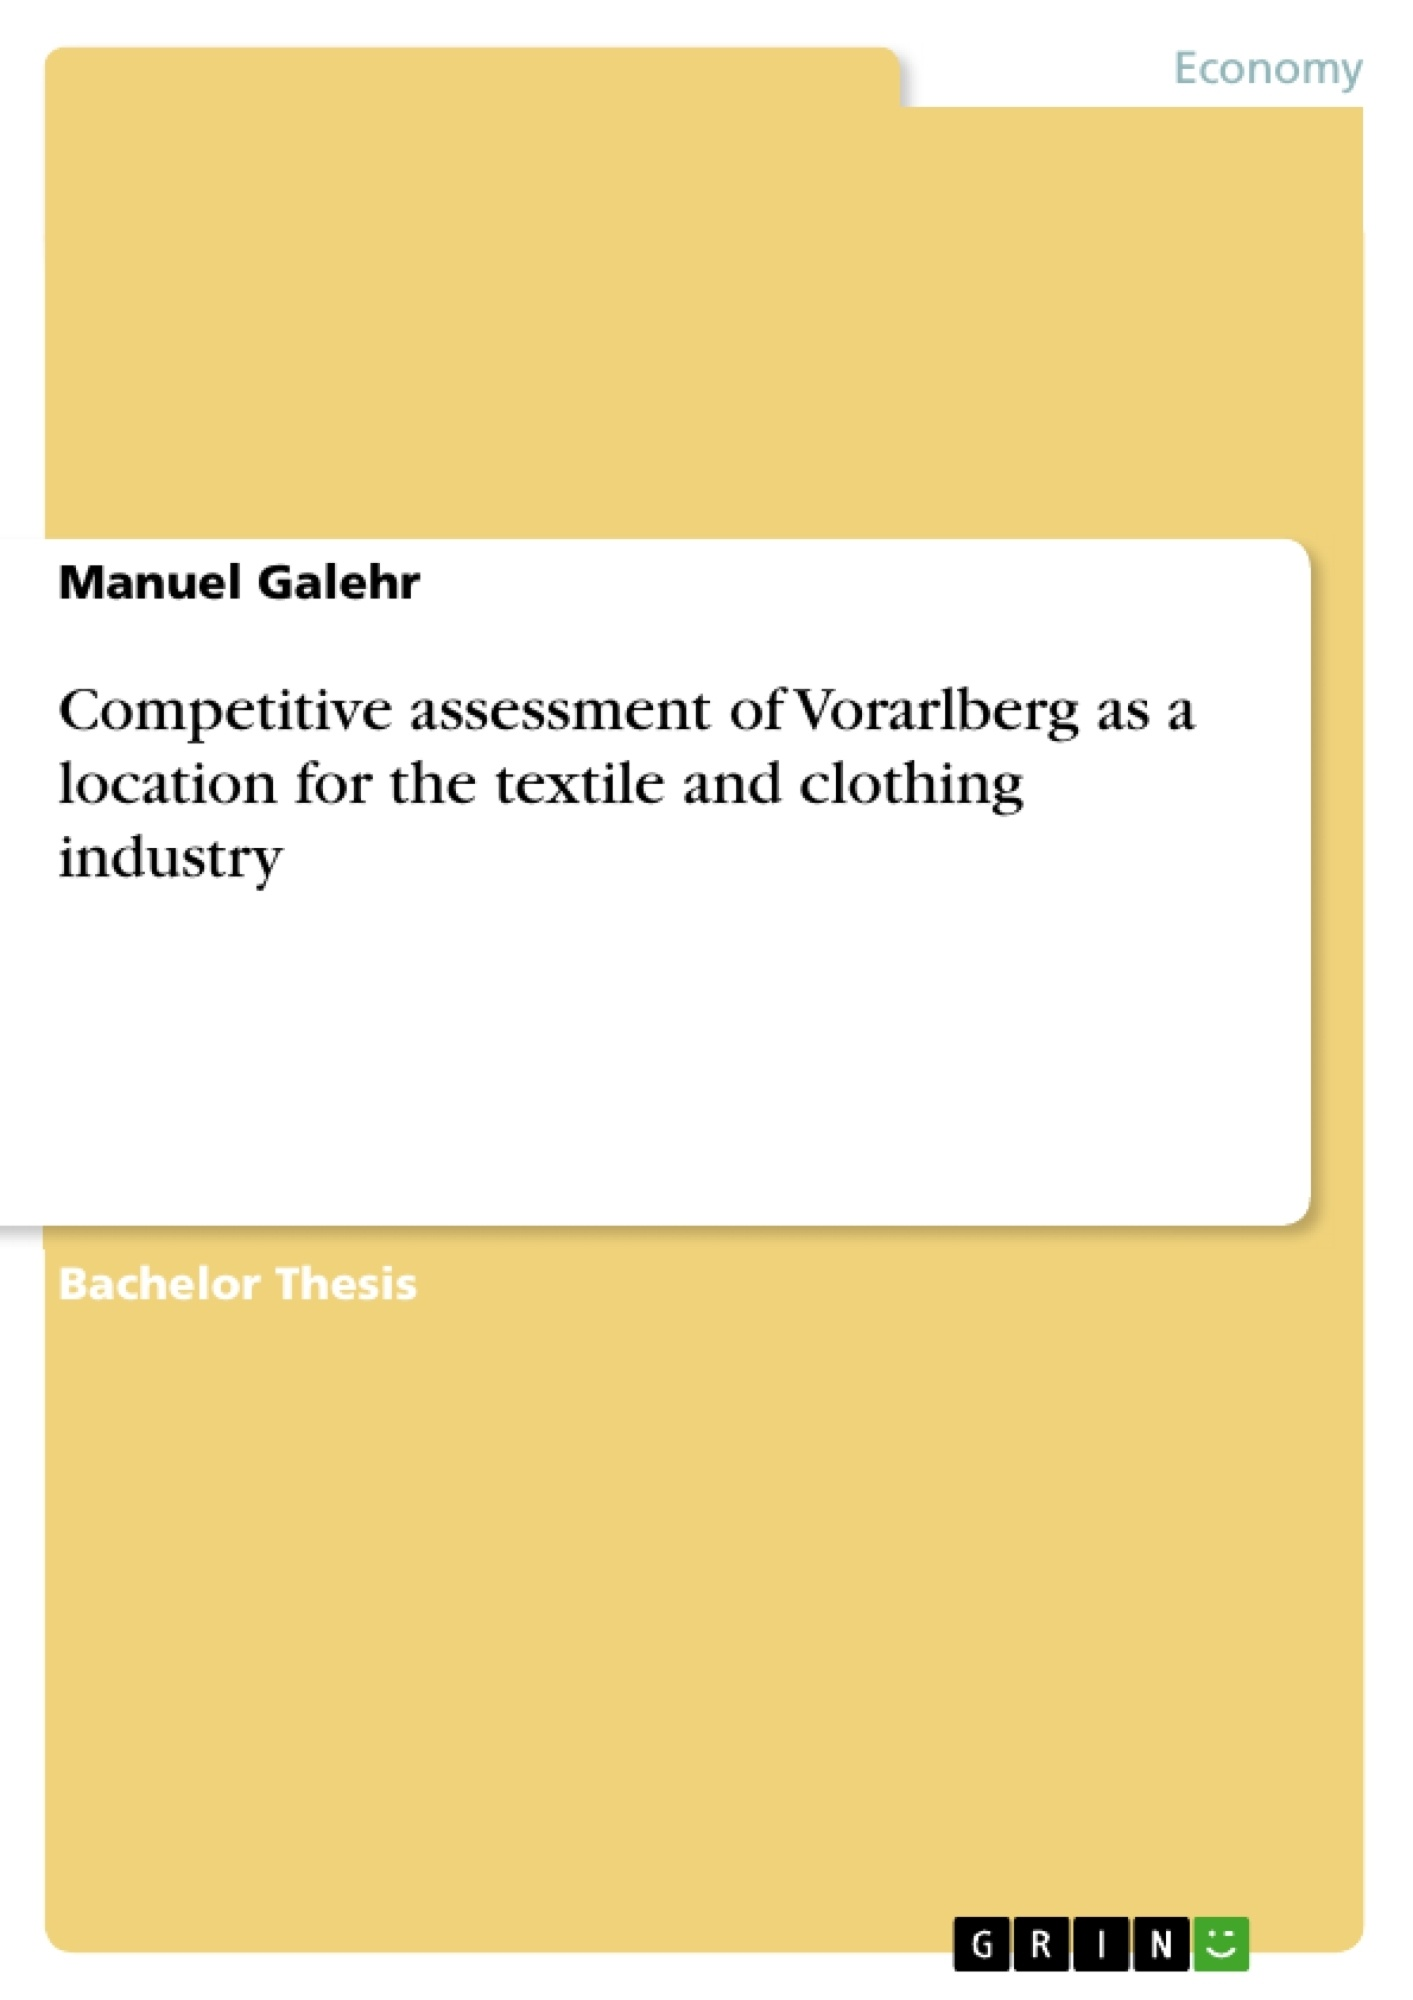 Title: Competitive assessment of Vorarlberg as a location for the textile and clothing industry